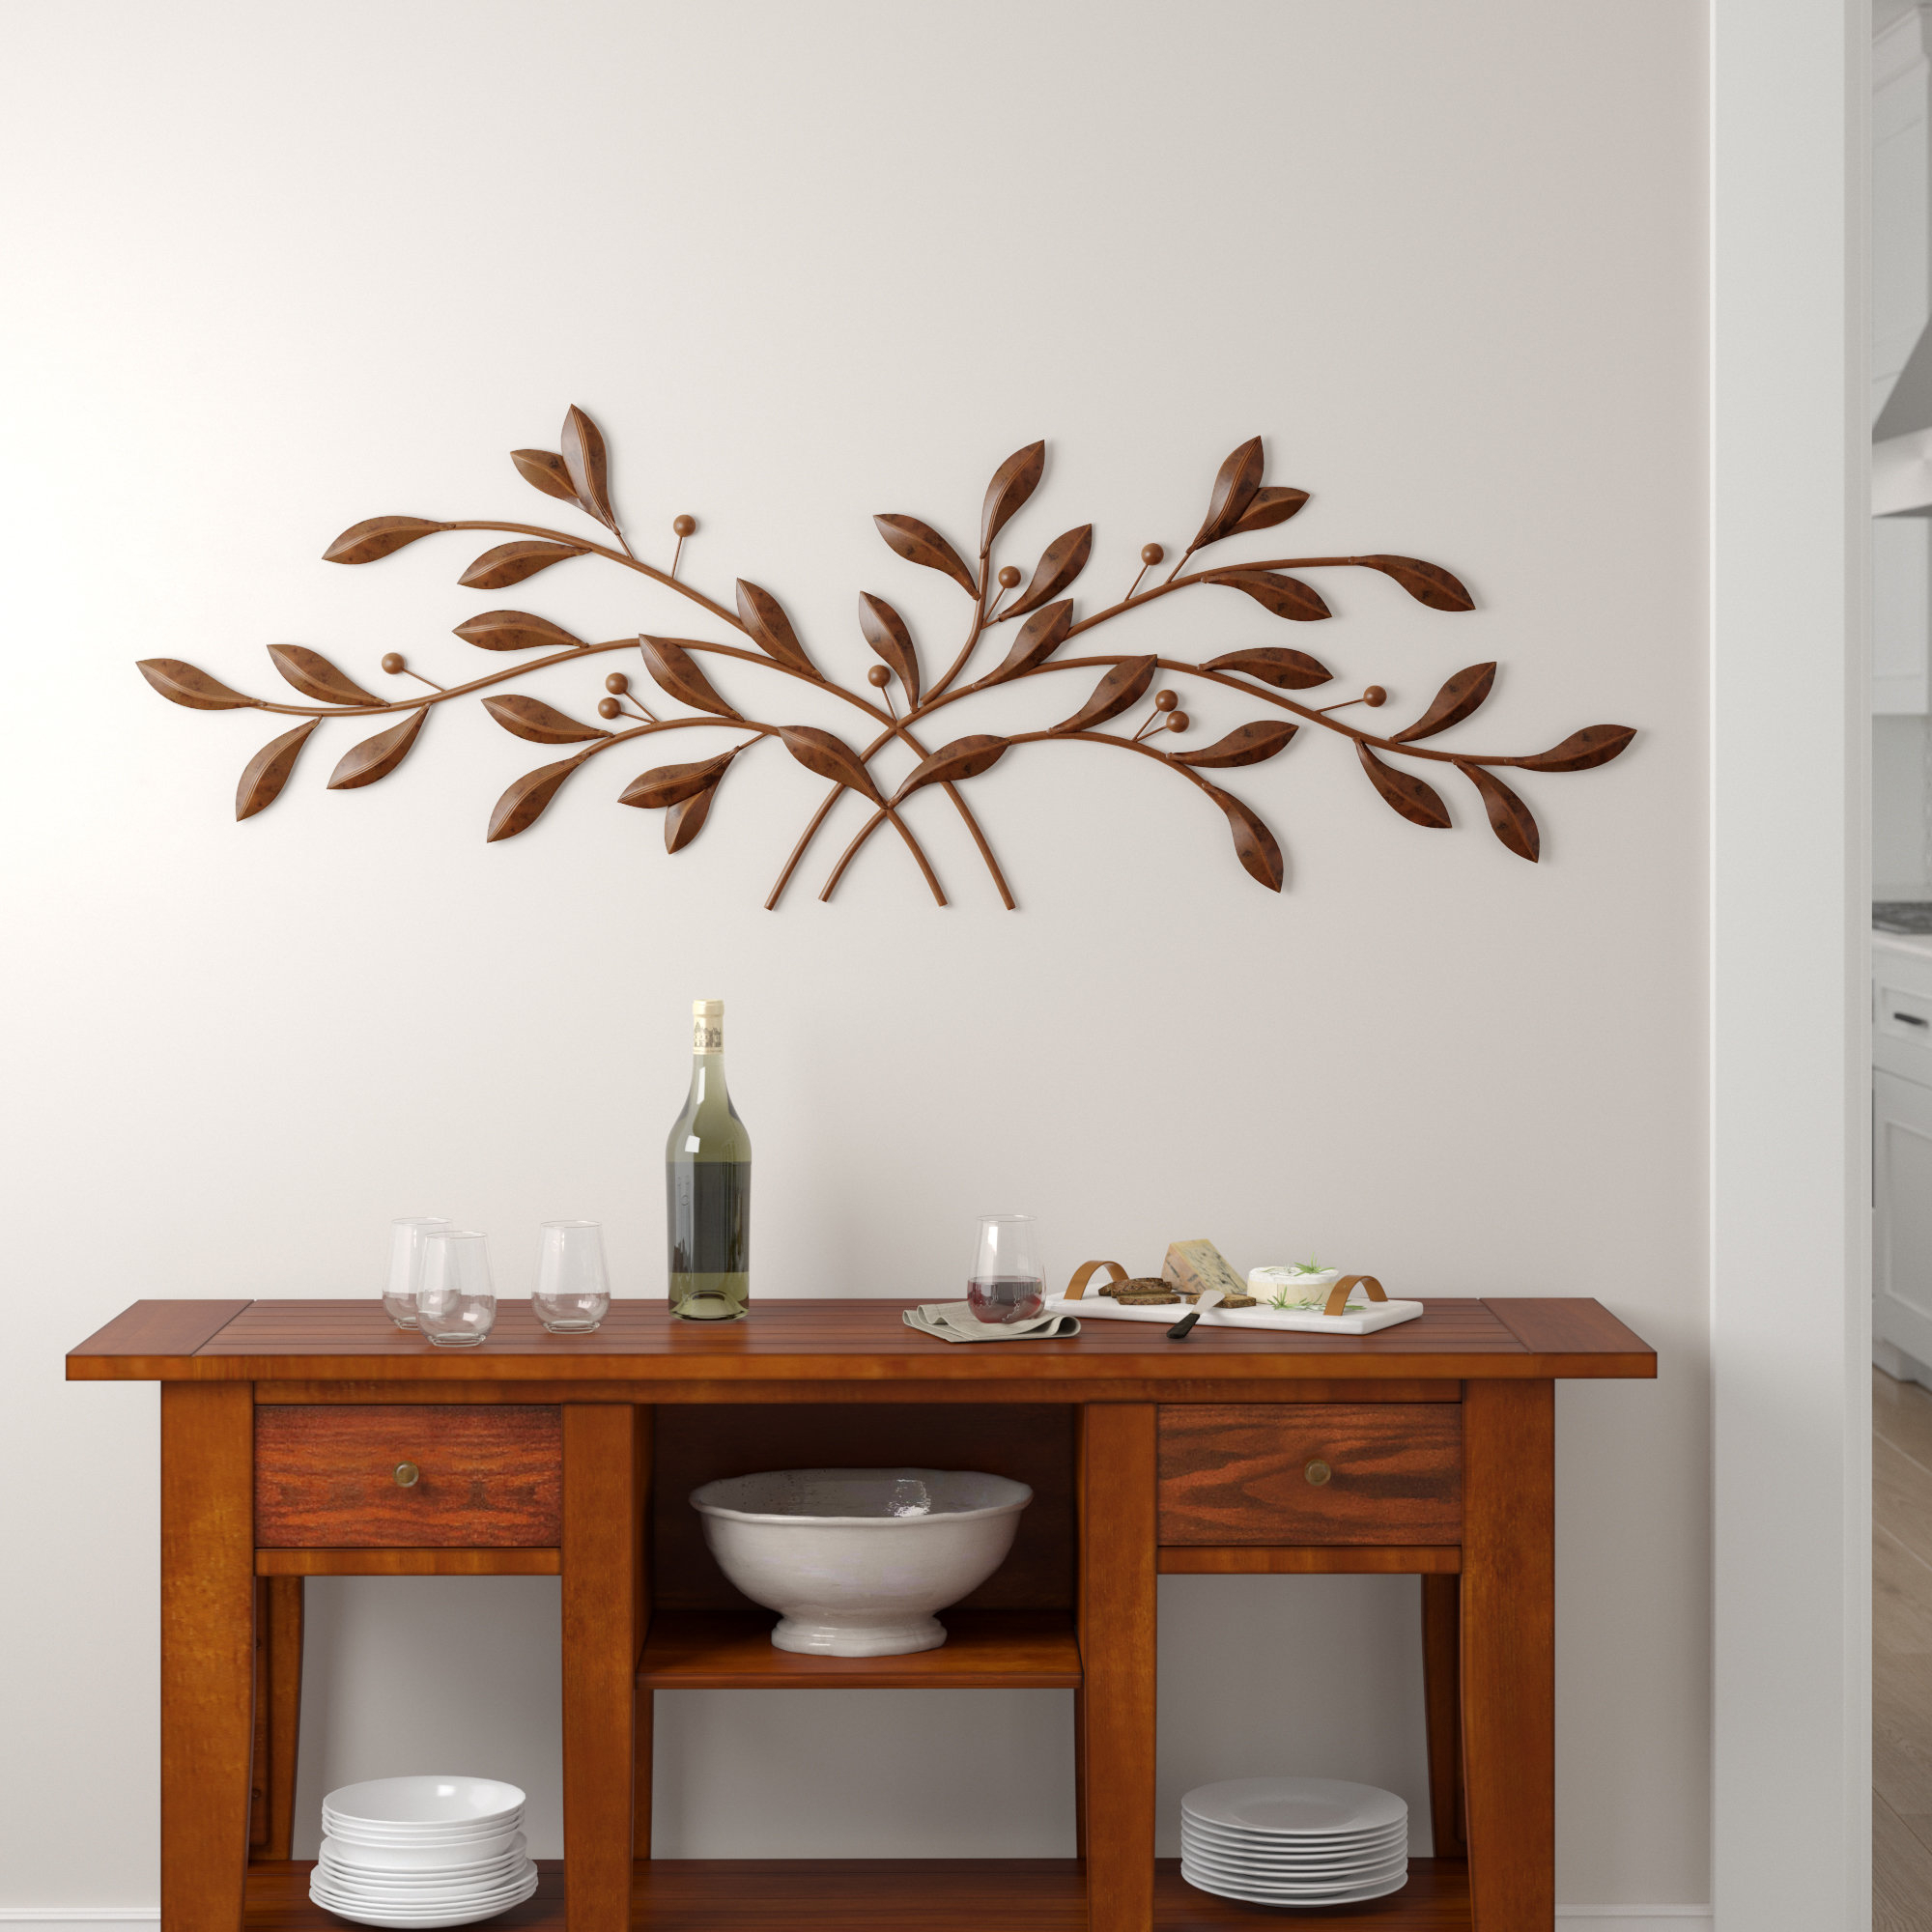 Metal Leaf Wall Hanging | Wayfair pertaining to Metal Leaf Wall Decor By Red Barrel Studio (Image 13 of 30)